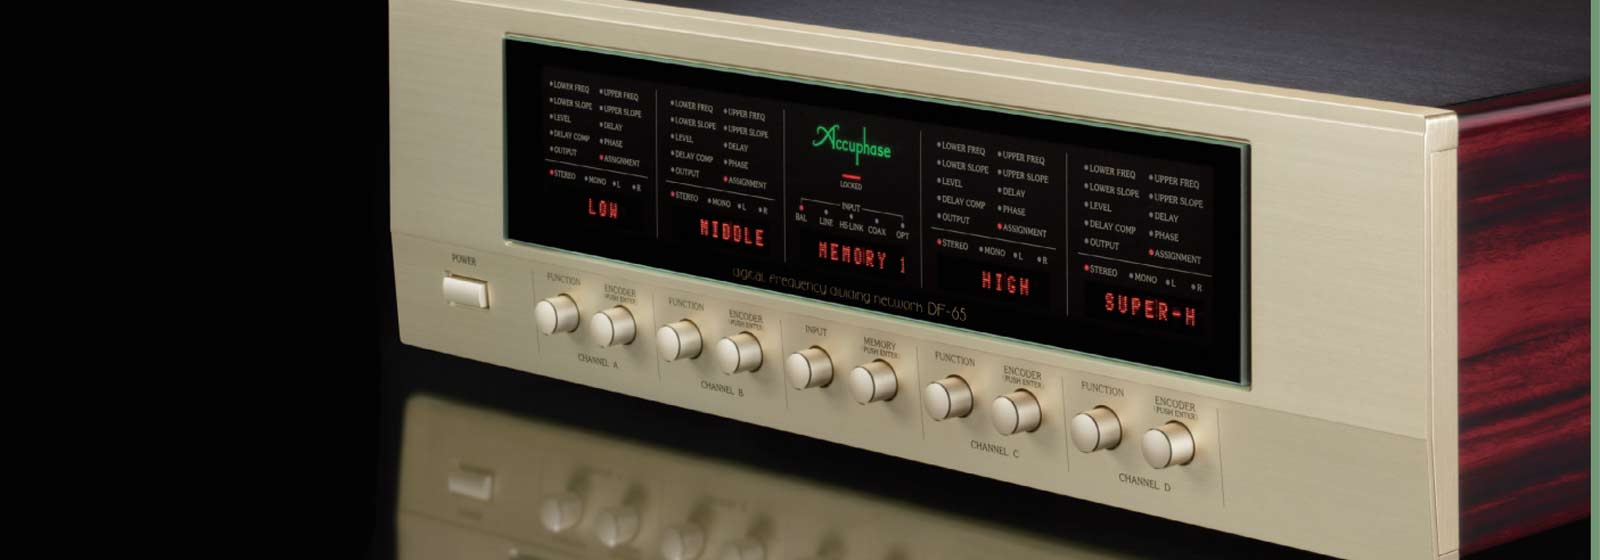 Accuphase-DF-65-Digital-Frequency-Dividing-Network